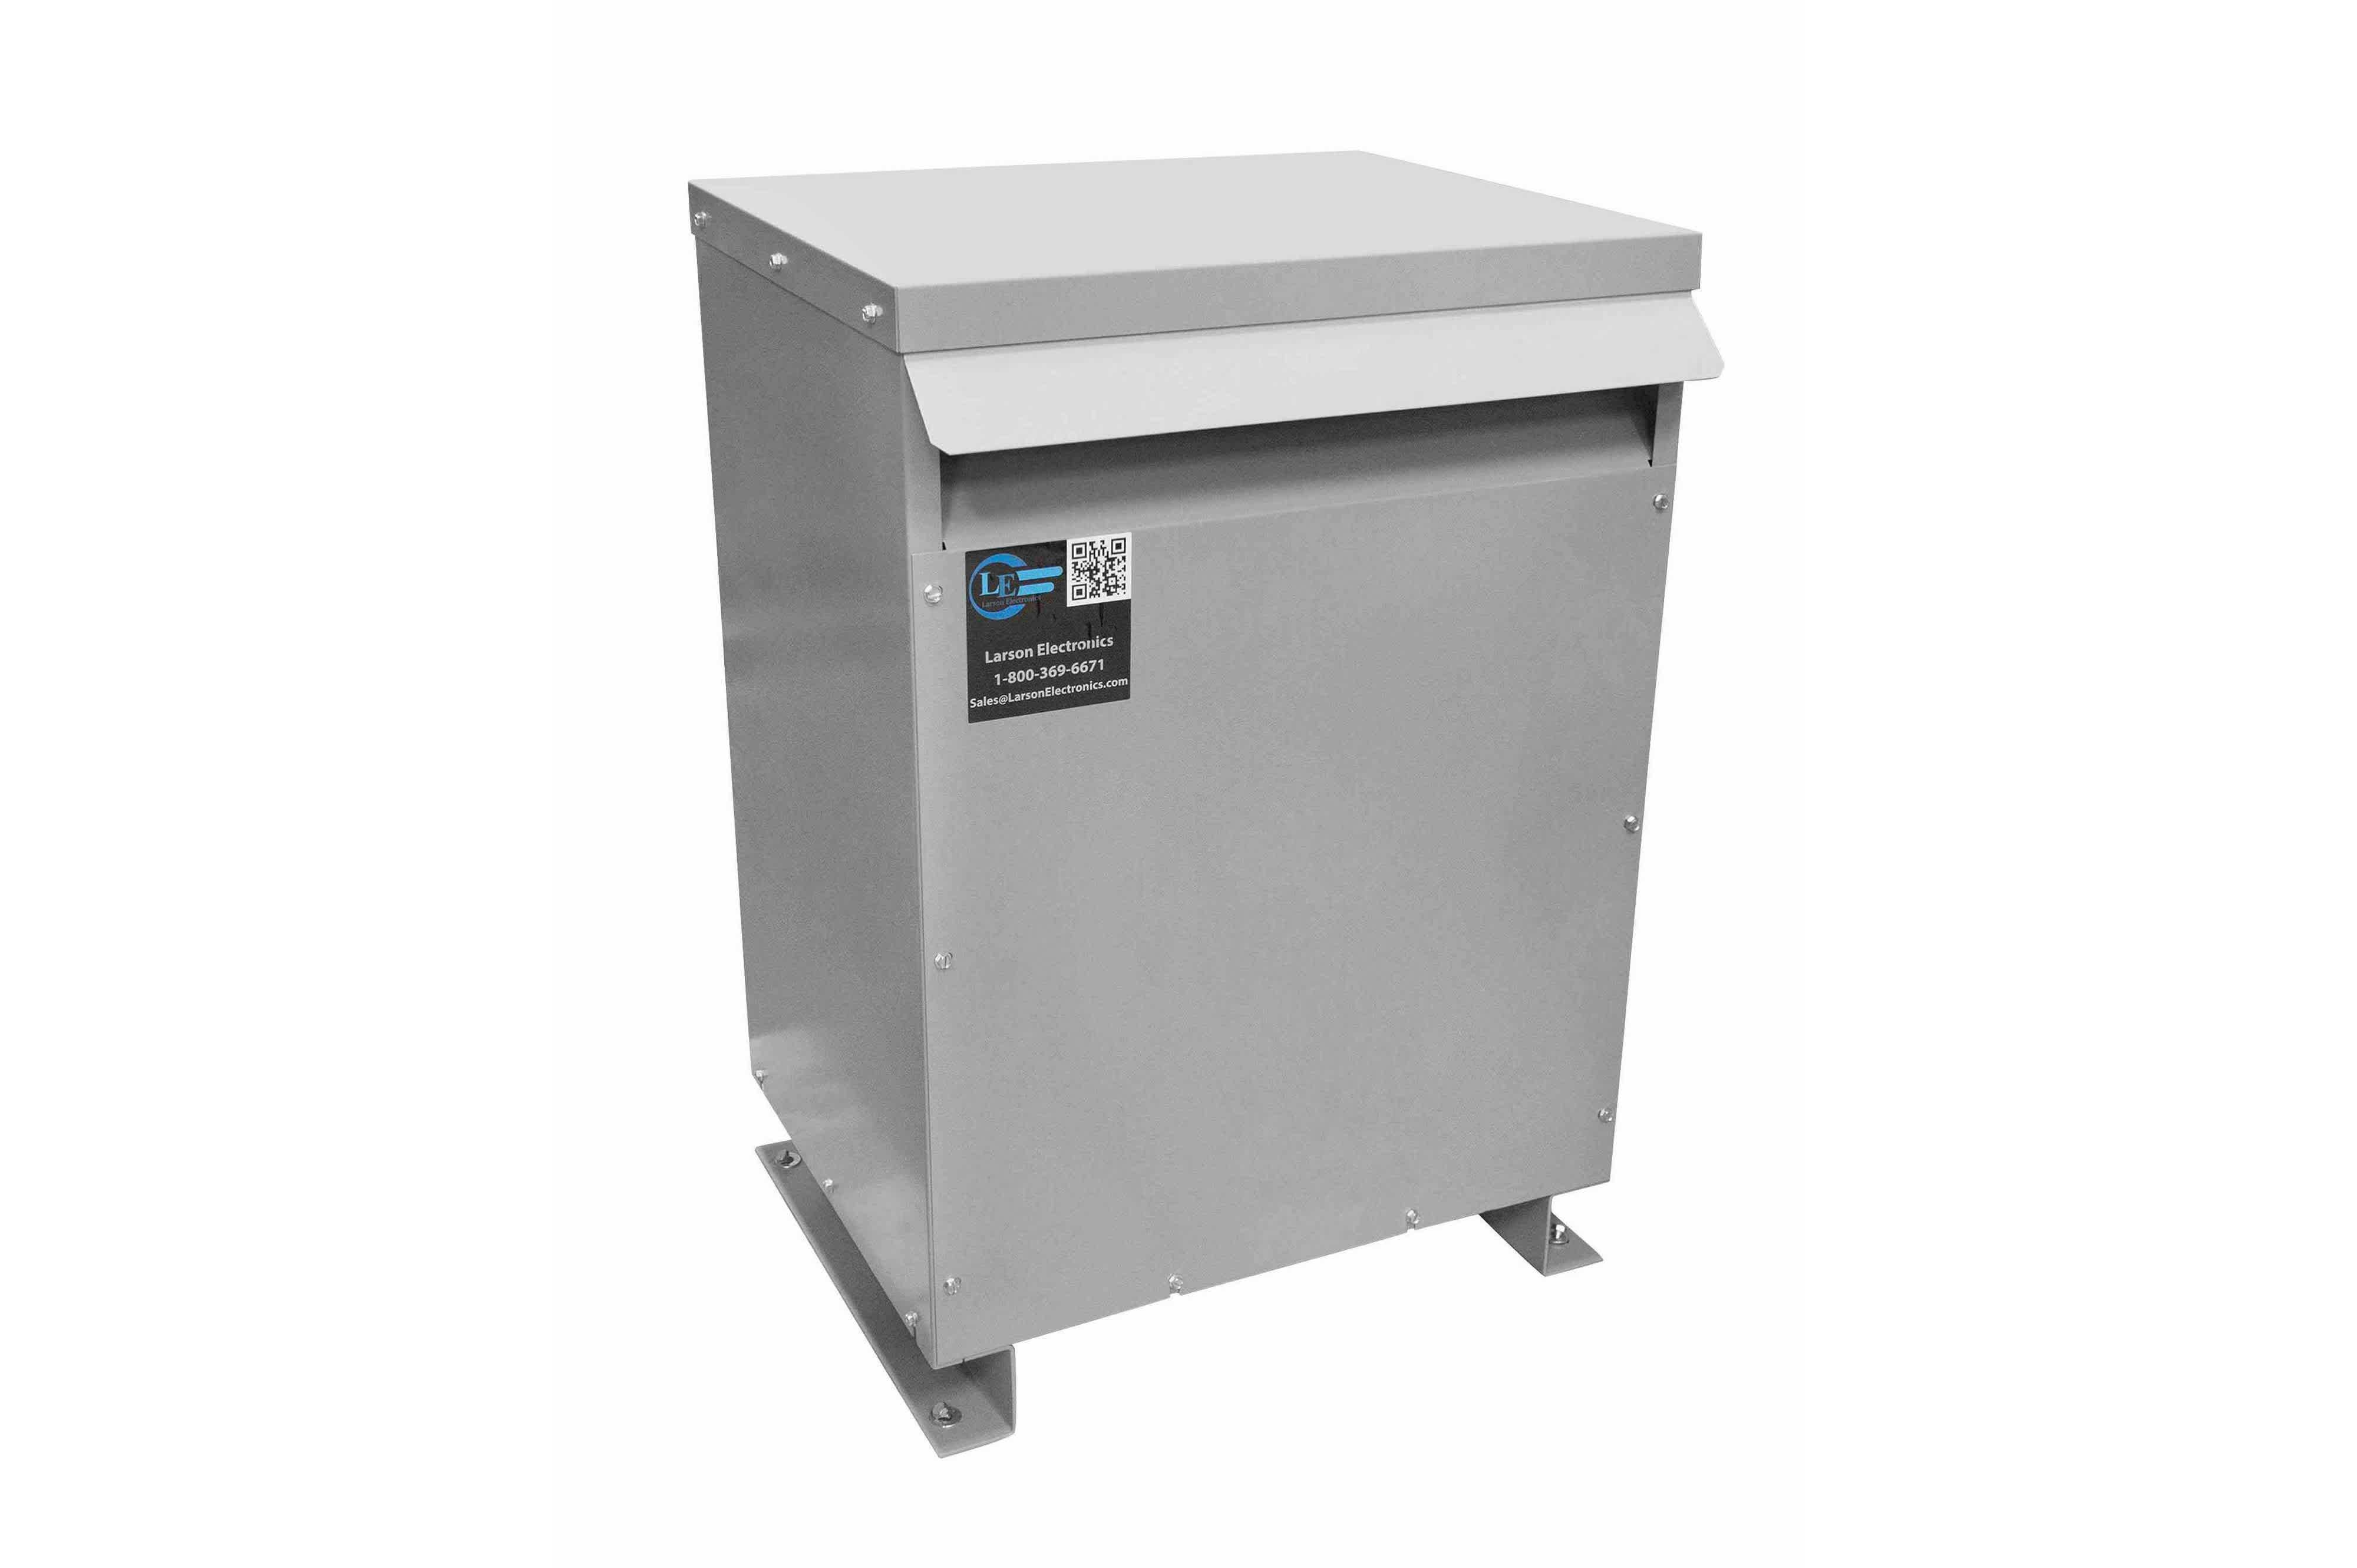 9 kVA 3PH Isolation Transformer, 208V Wye Primary, 380V Delta Secondary, N3R, Ventilated, 60 Hz